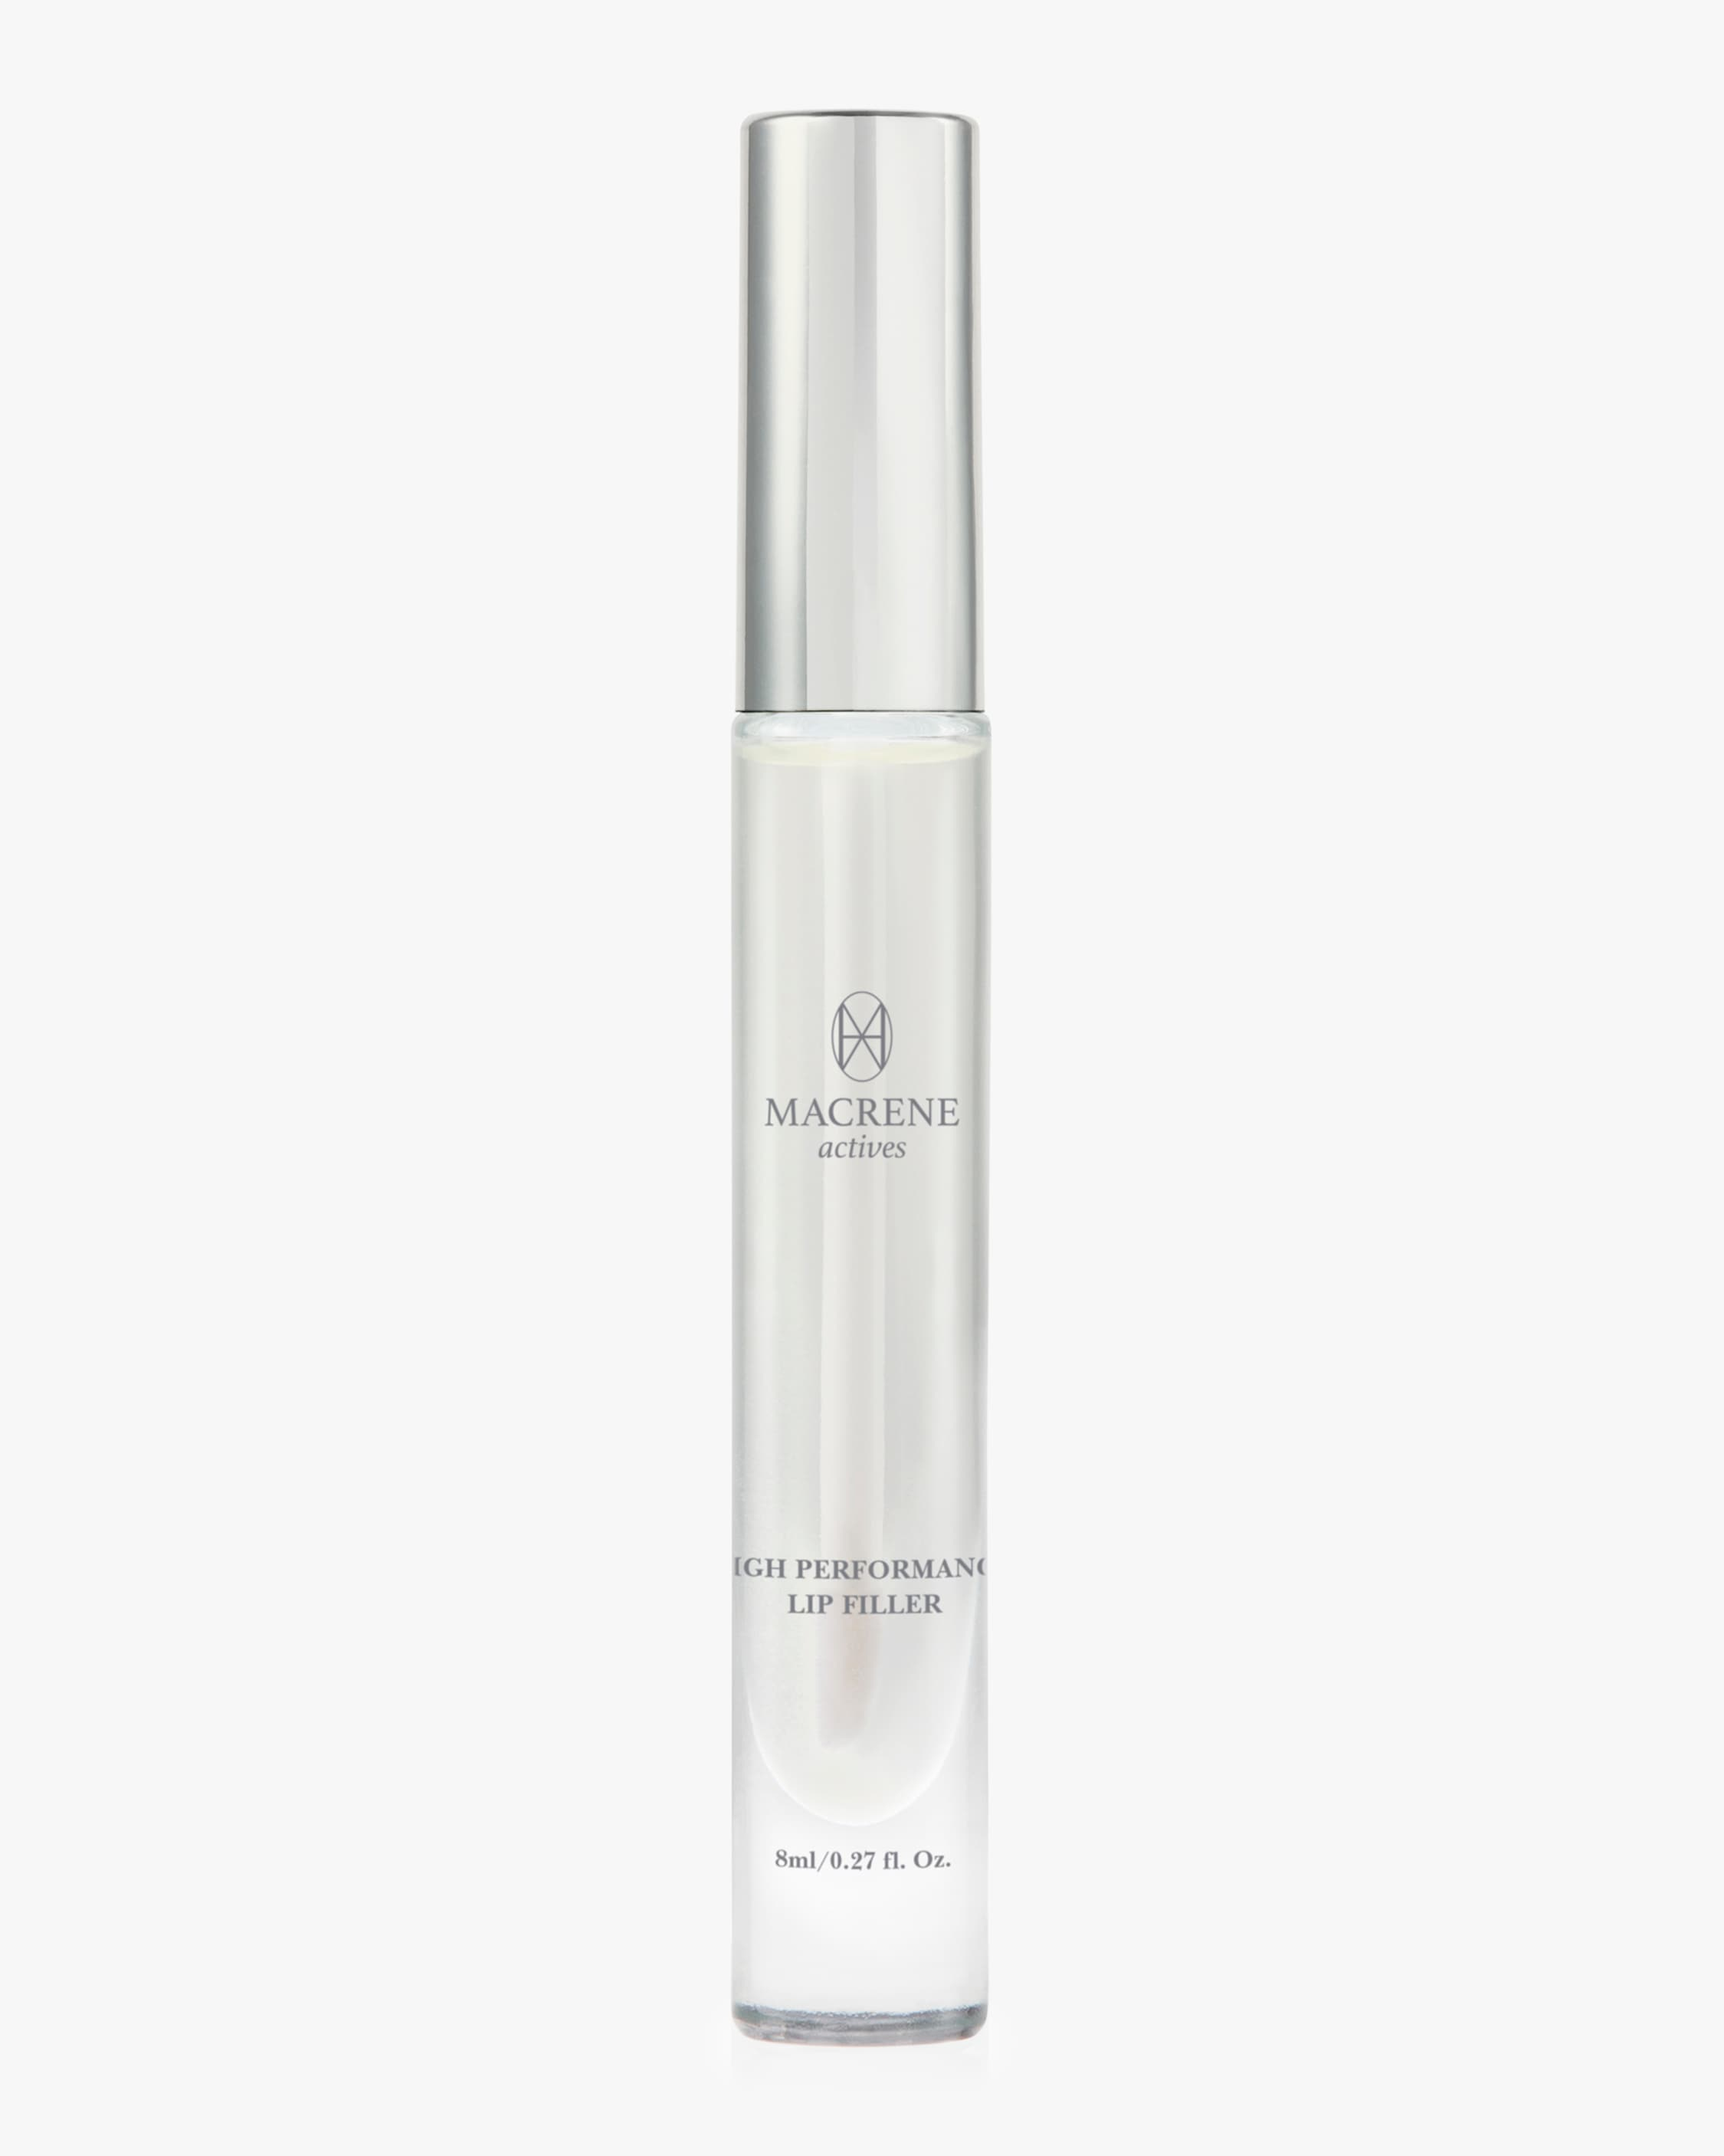 Macrene Actives High Performance Lip Filler 8ml In No Color